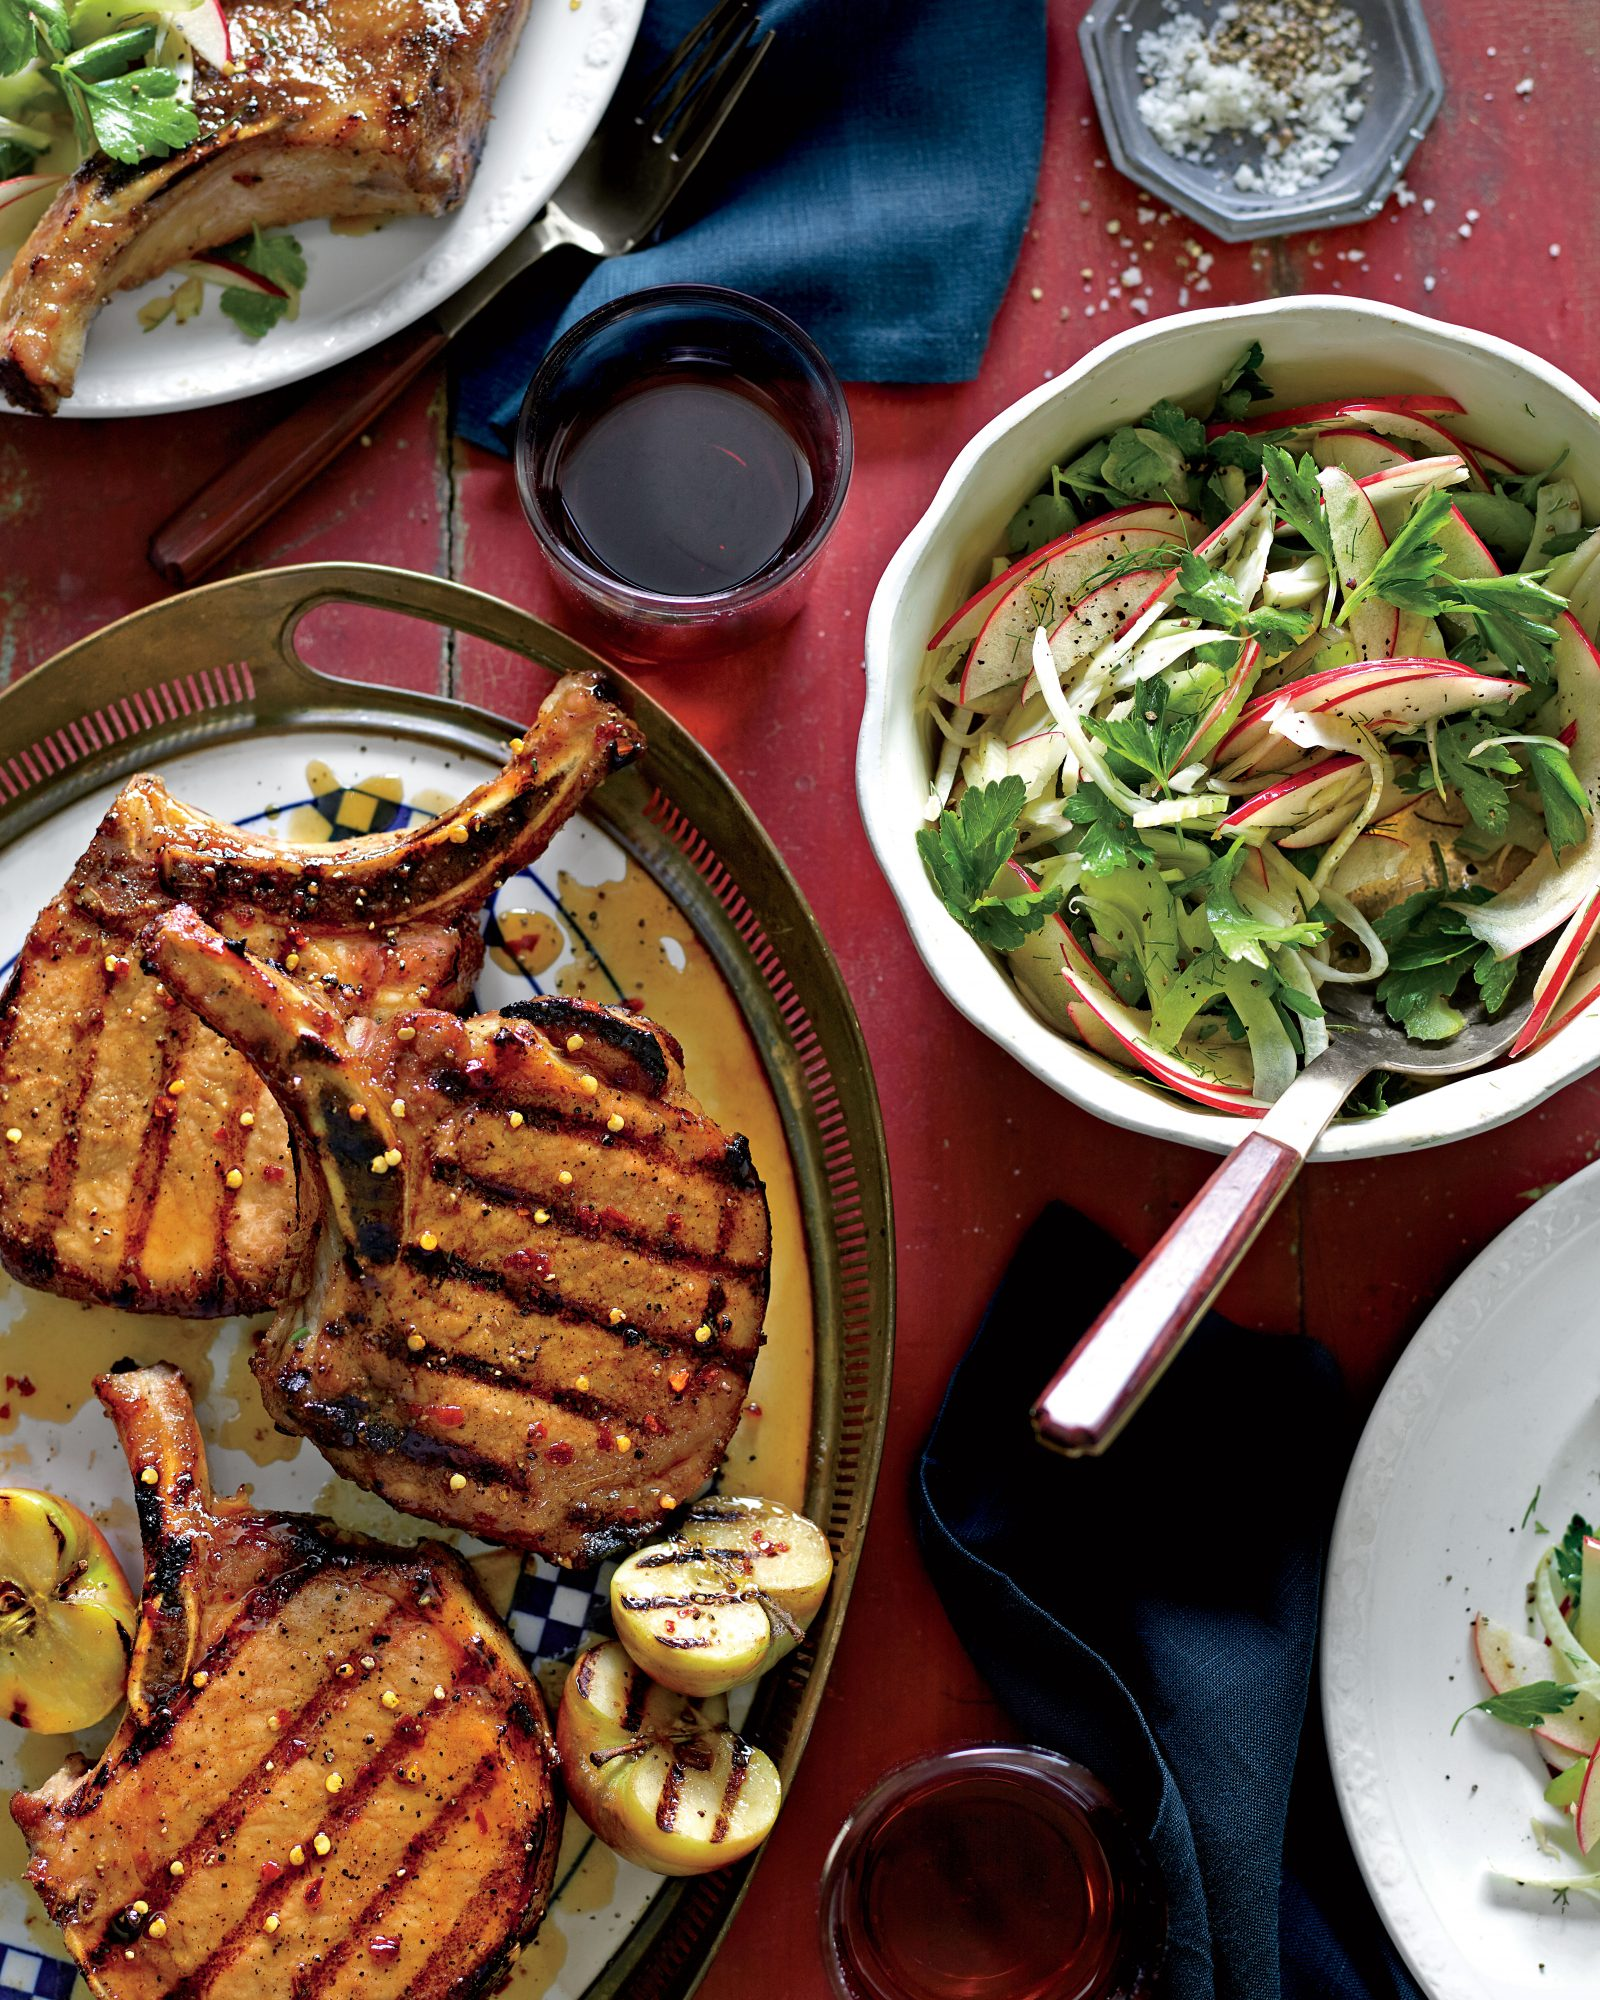 Grilled Pork Chops with Apple-Bourbon Glaze Recipe